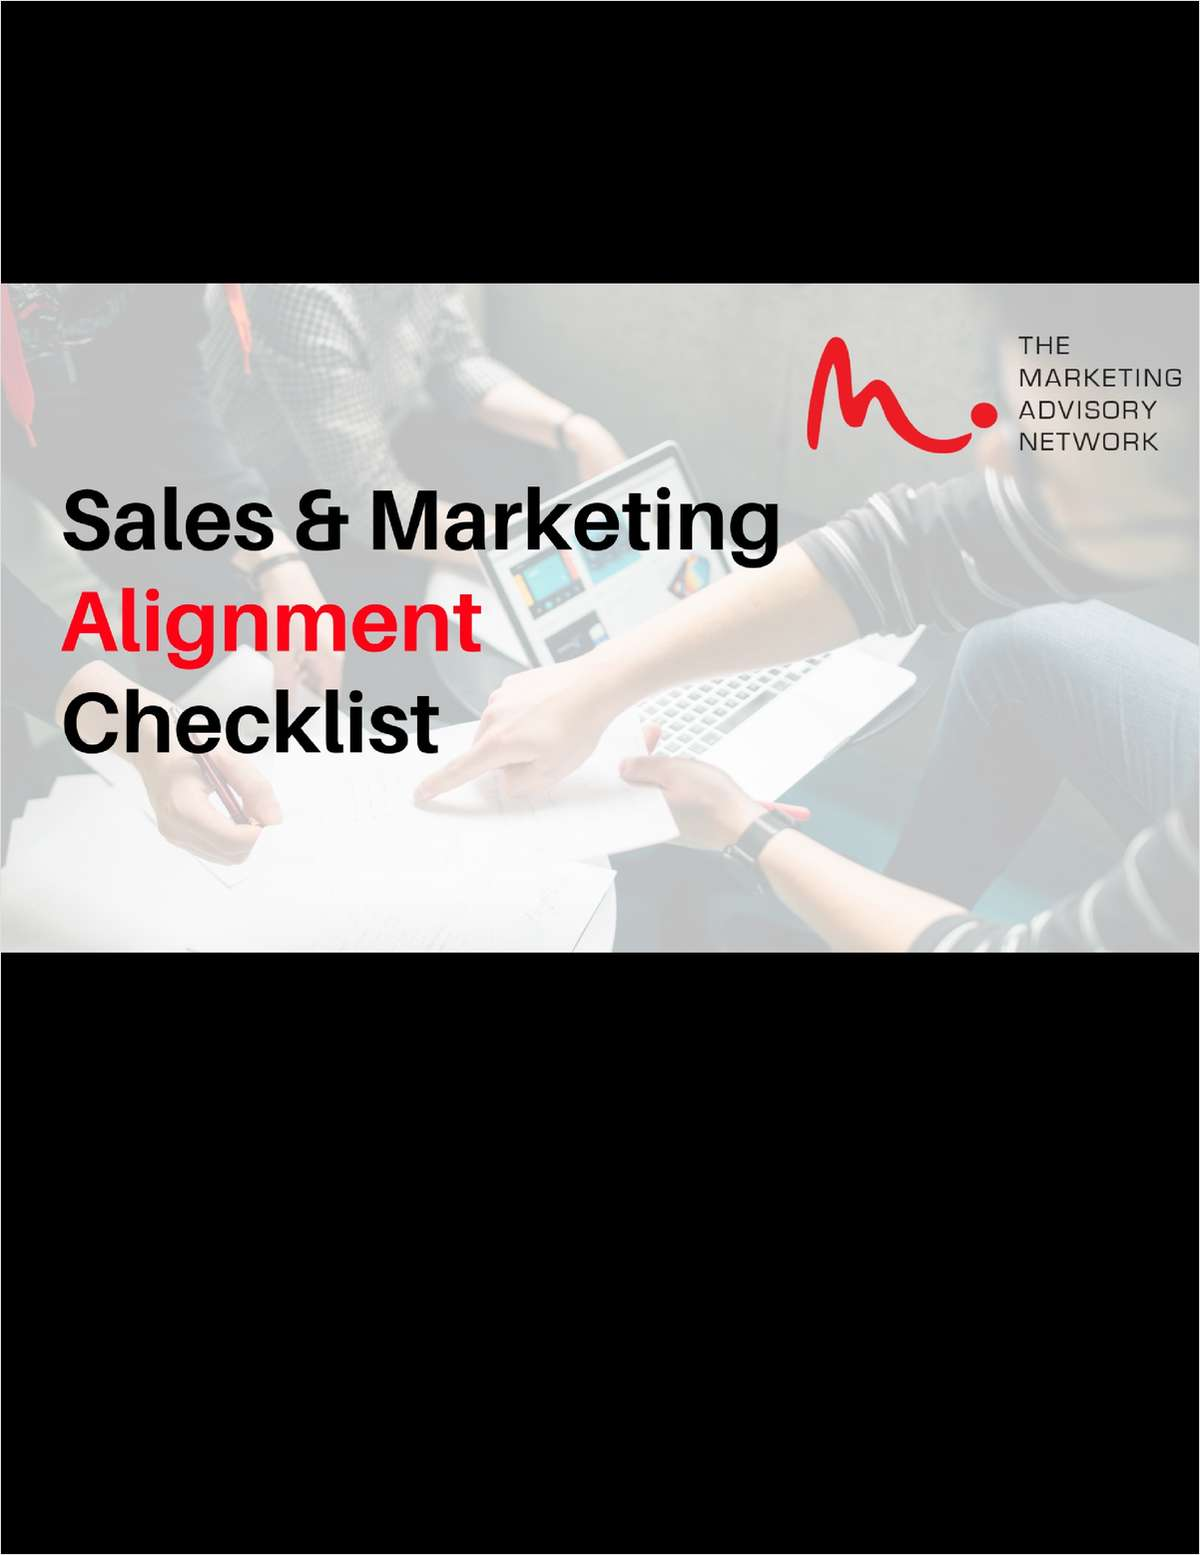 Sales & Marketing Alignment Checklist